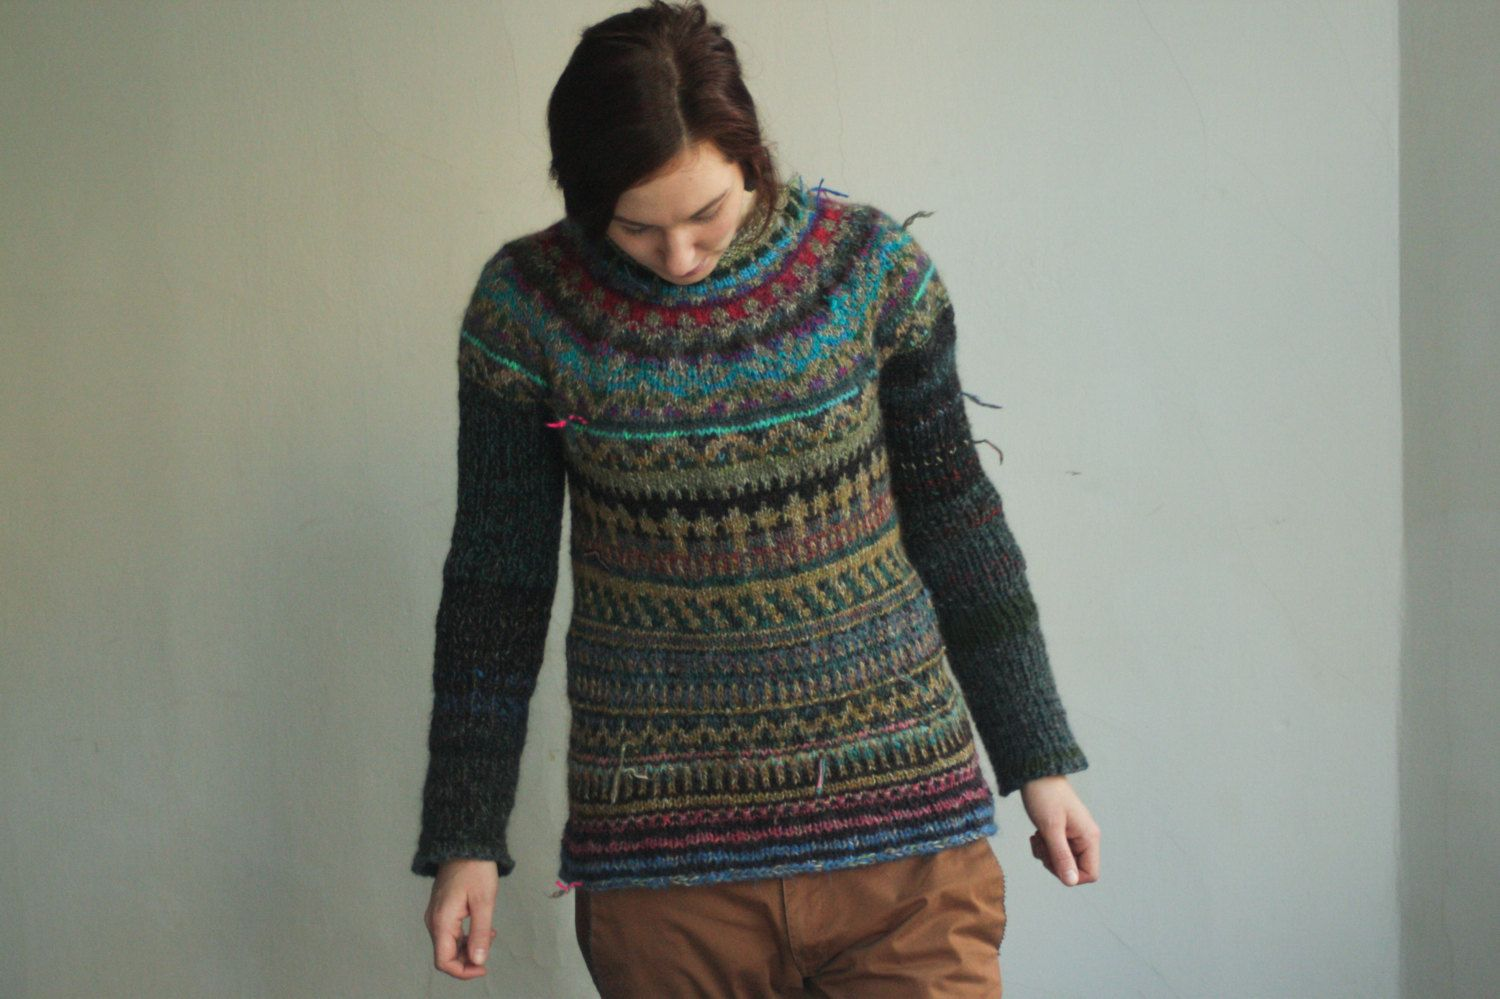 Free shipping! Handmade double knitted Icelandic wool sweater by TASSSHA on Etsy